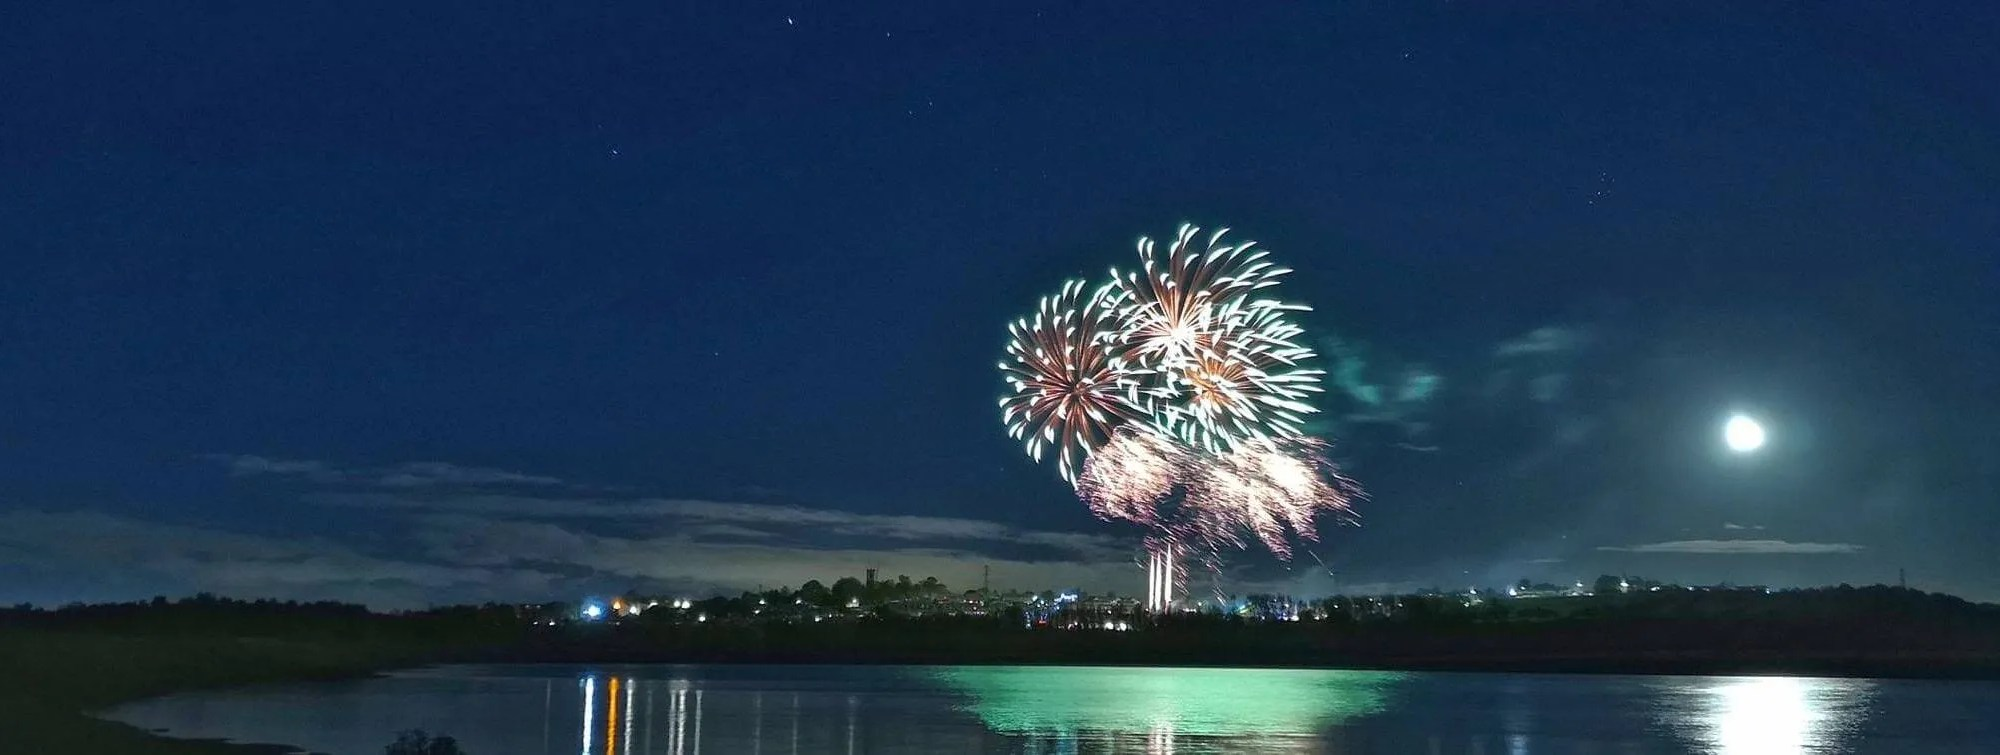 Professional firework display reflected in a lake